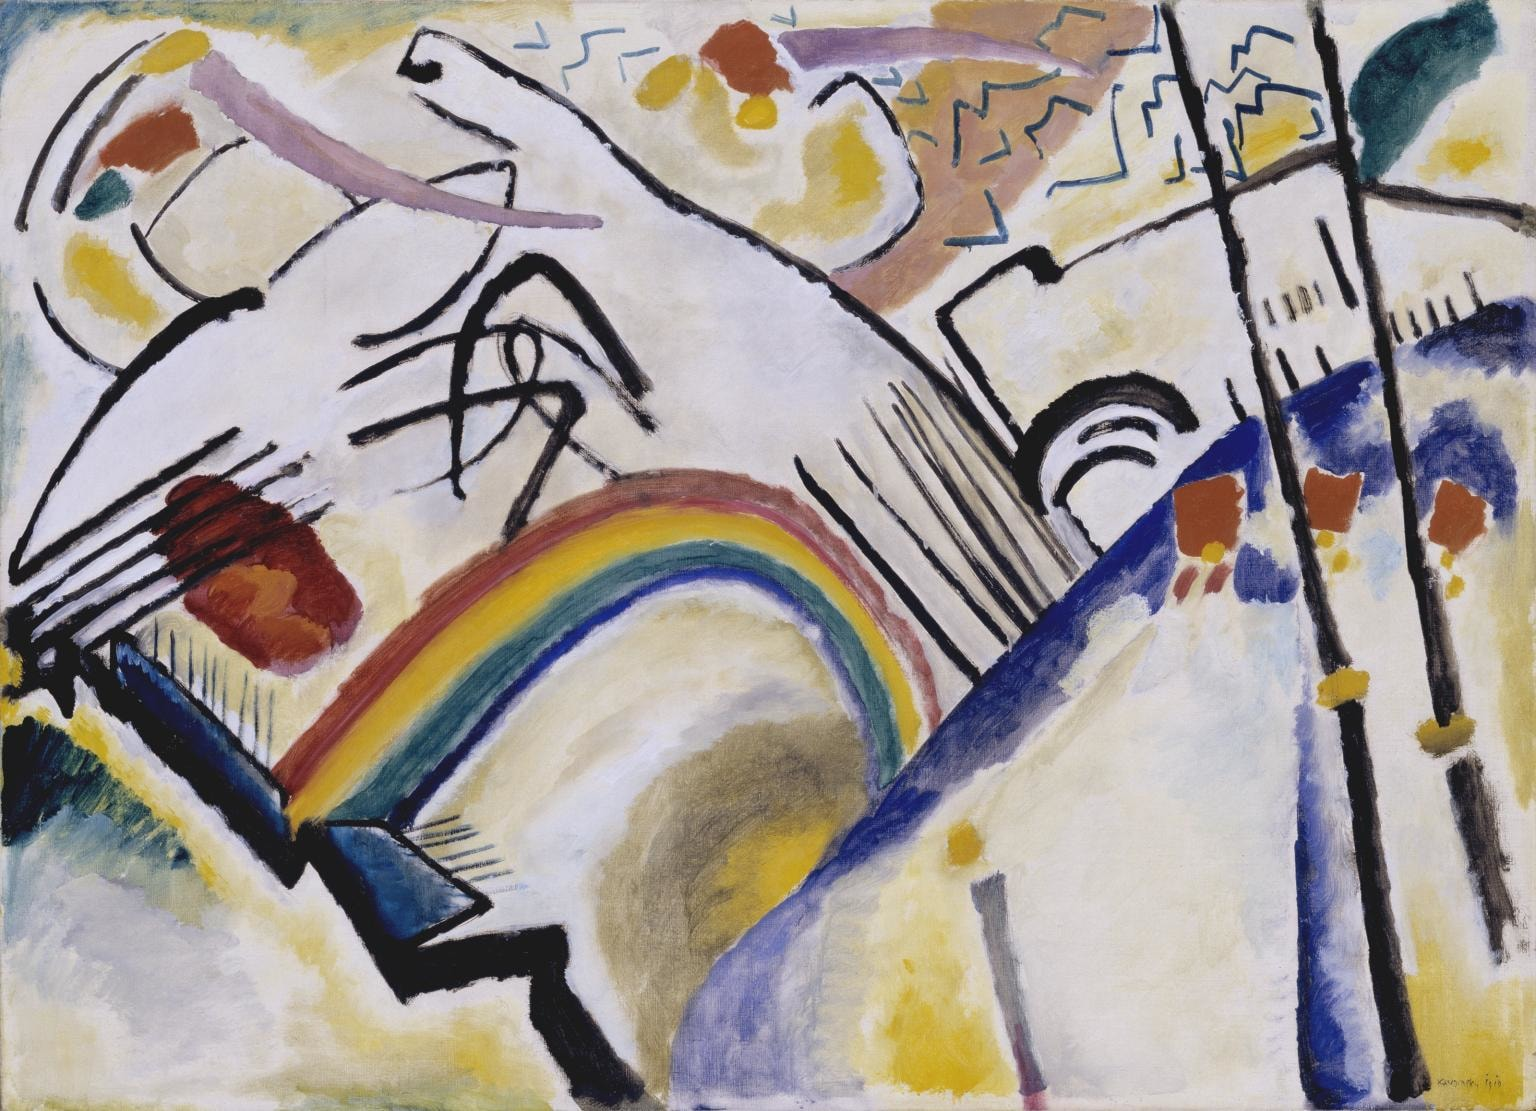 Abstract painting of rainbows by Wassily Kandinsky.